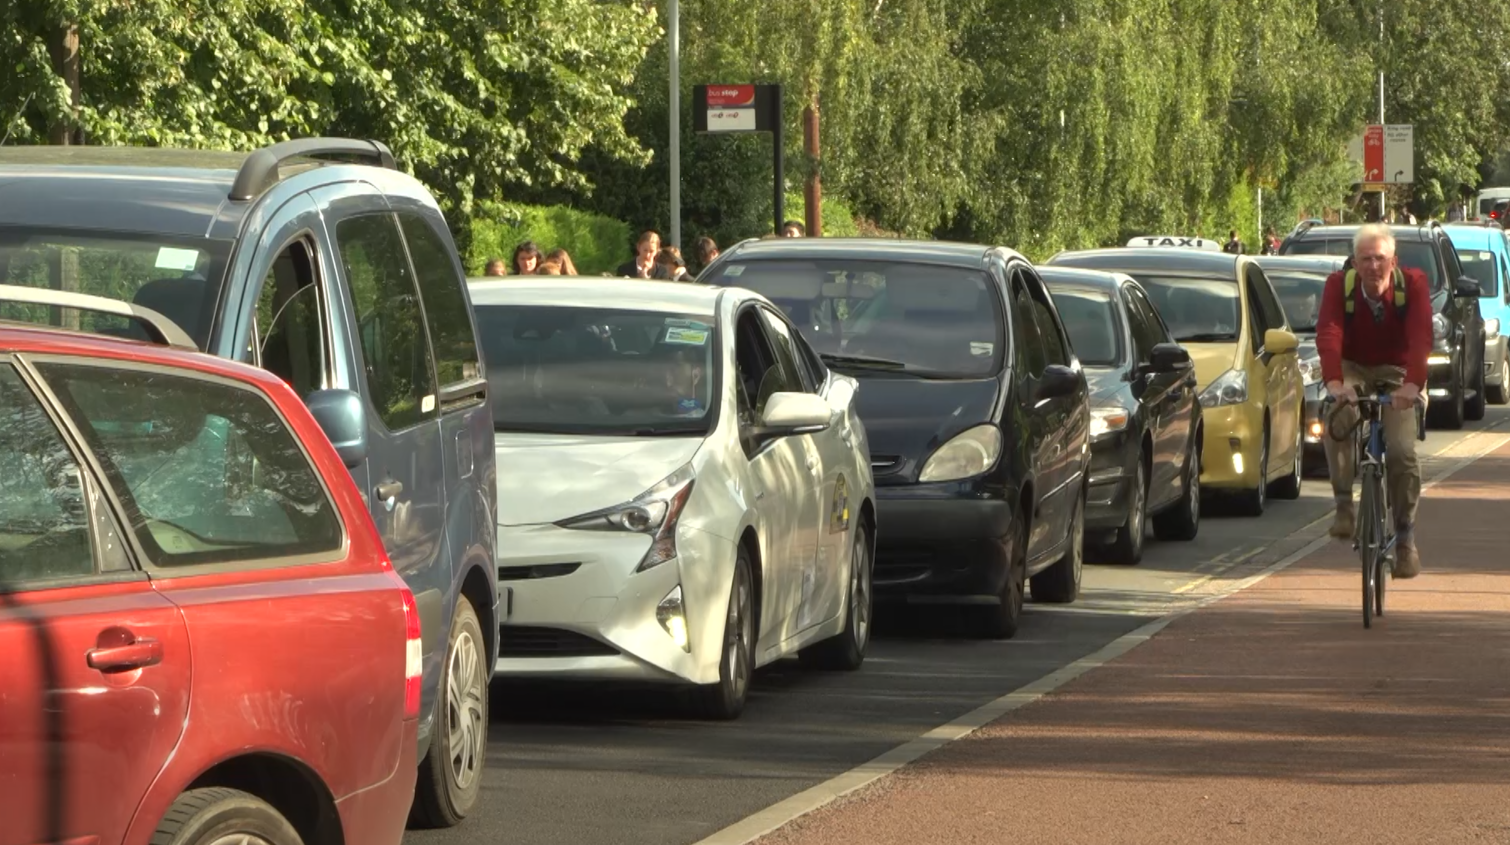 Sensor technology could herald the end of the traffic jam